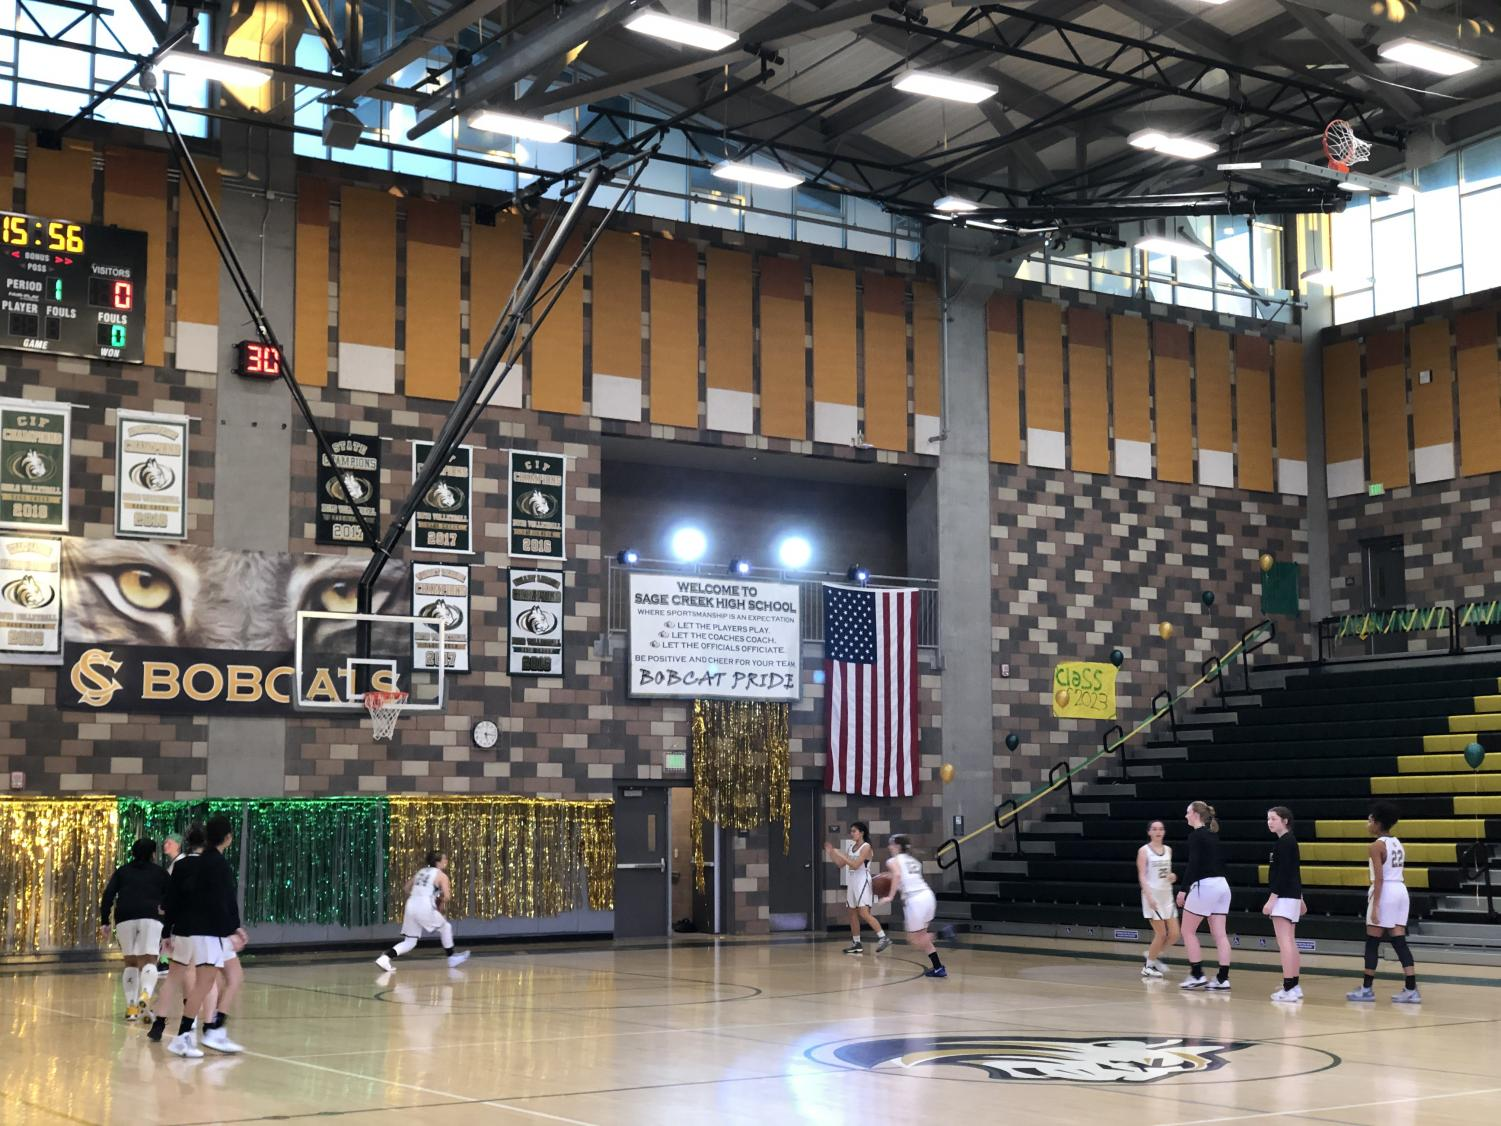 Varsity+girls+basketball+warming+up+for+their+much+anticipated+hoopcoming+game+against+Oceanside.+They+defeated+Oceanside+in+an+exciting+game+Friday%2C+Feb+7.